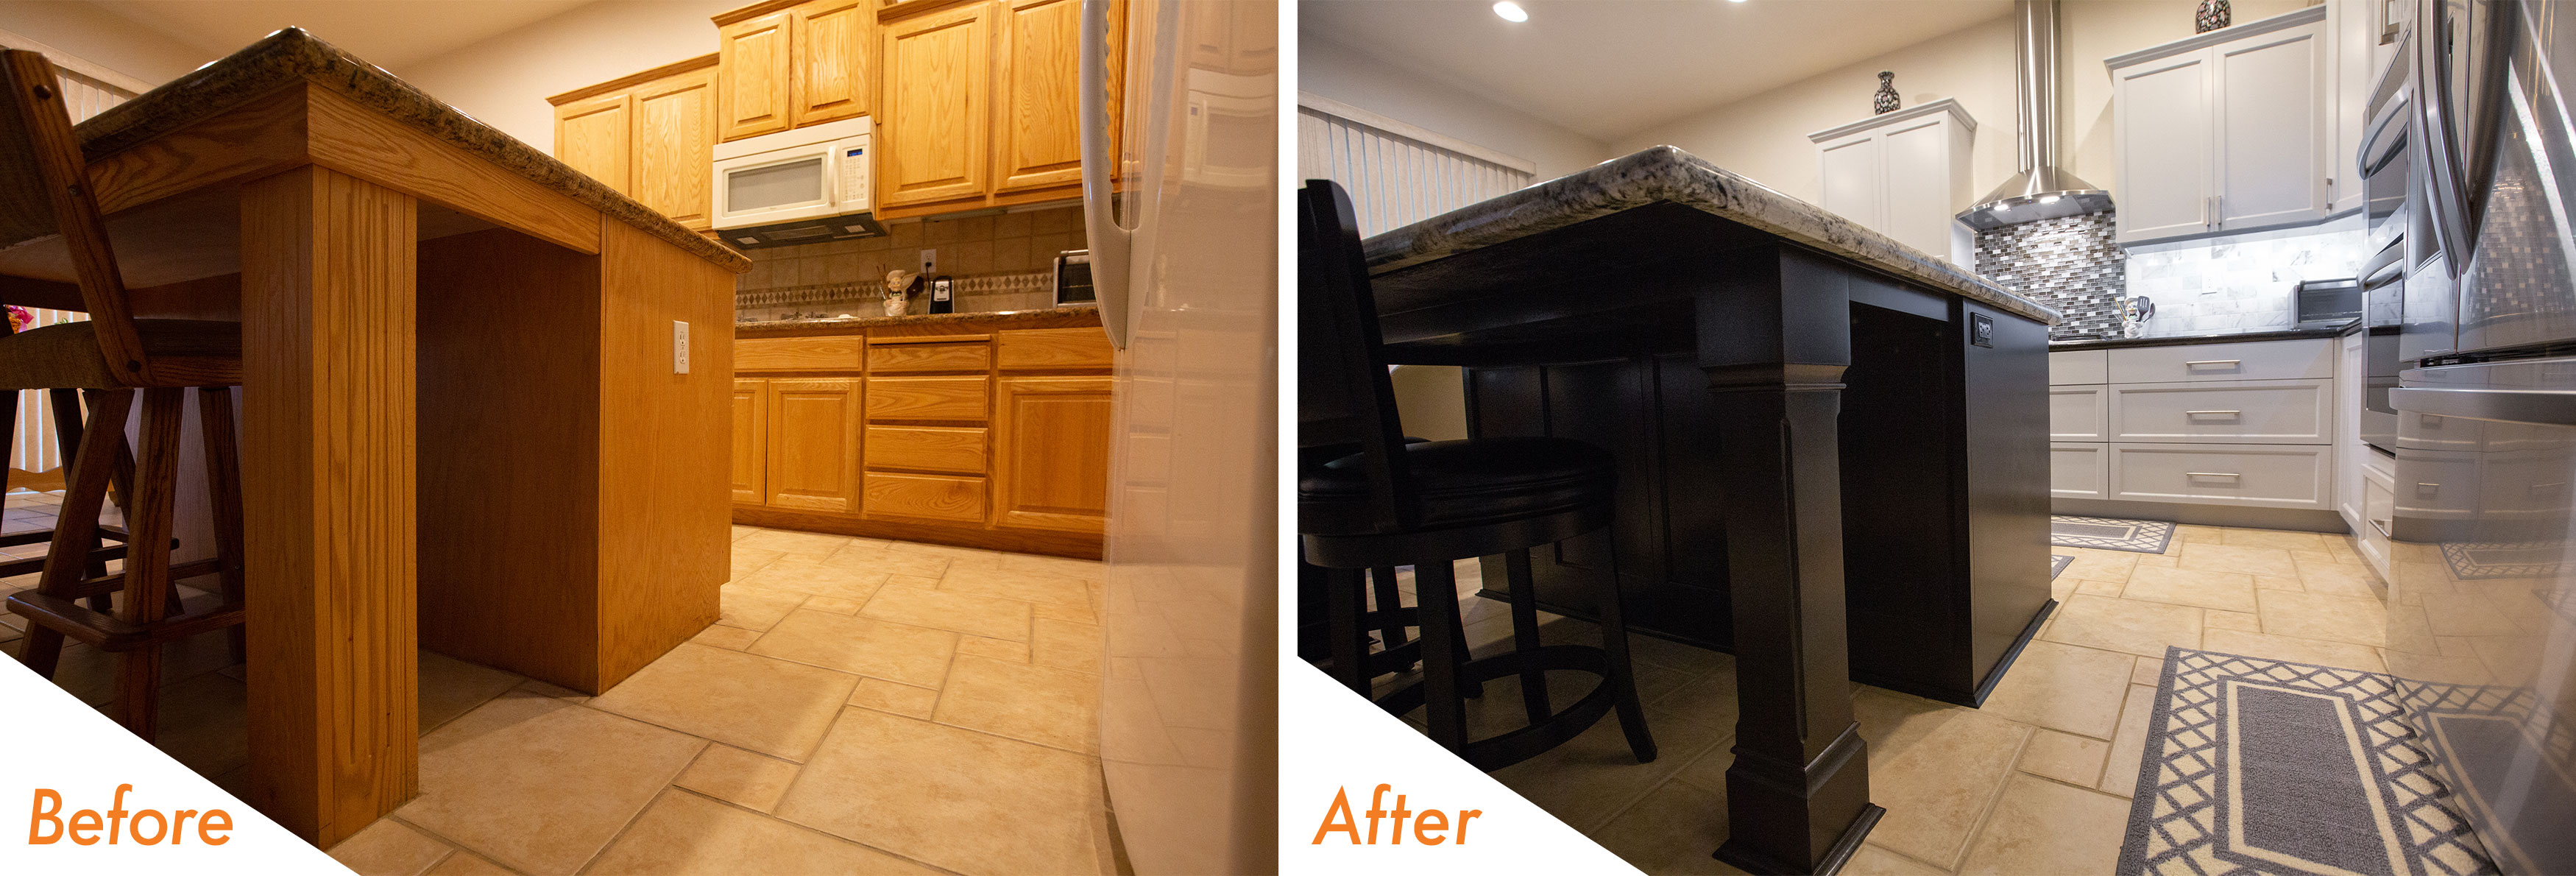 Before & After Custom Kitchen